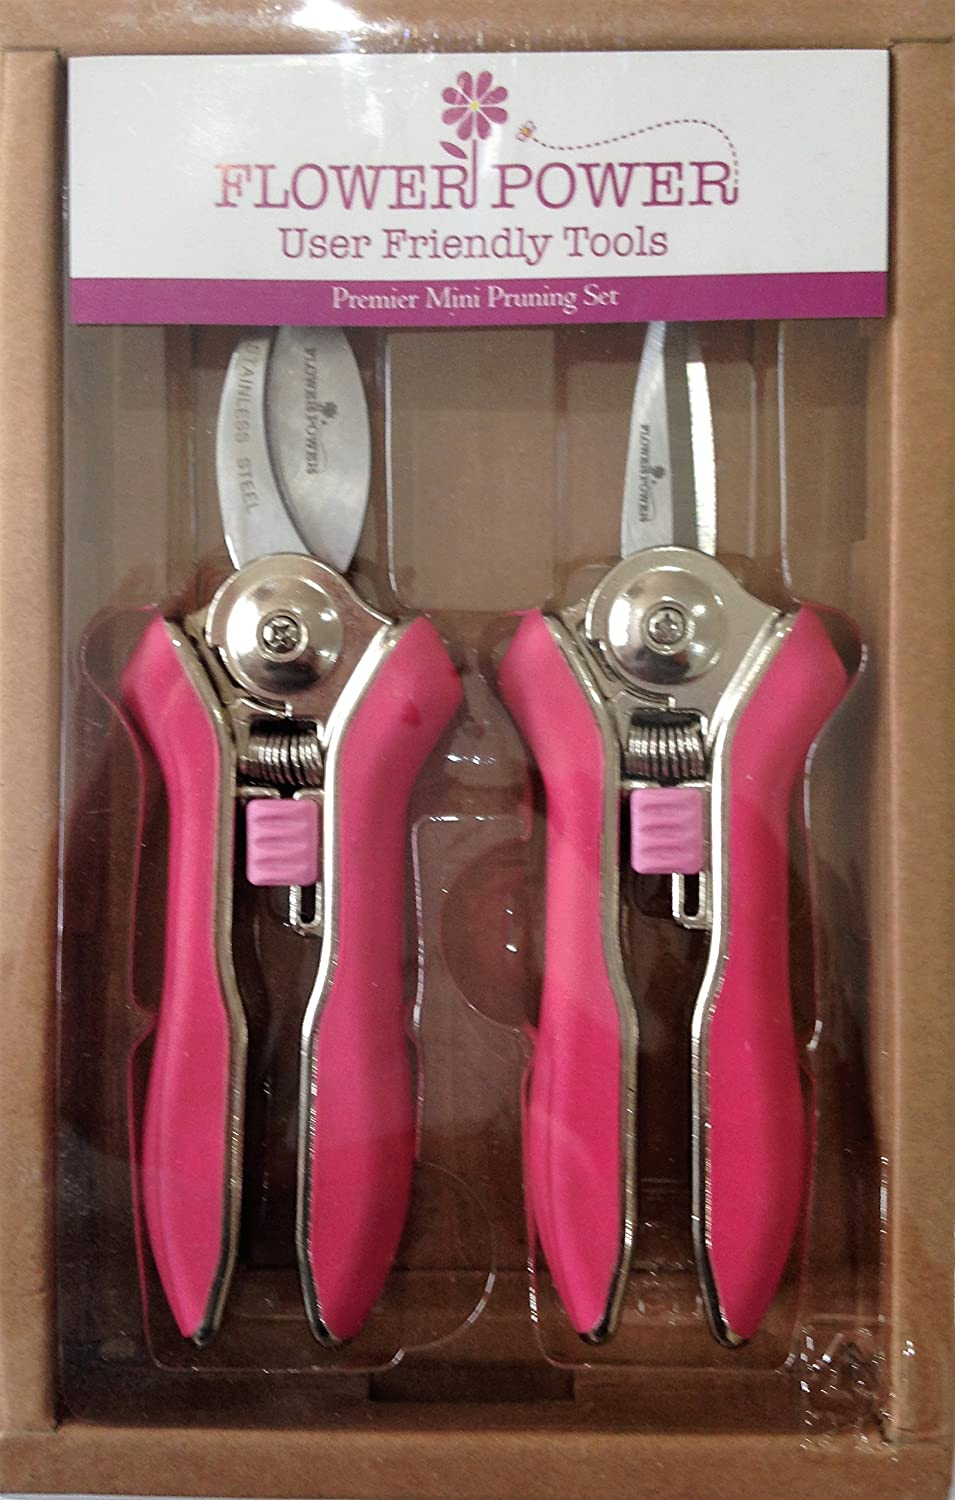 Ladies Gardening Mini Pruner Secateurs Set - Two Razor Sharp Pink Ladies Garden Secateurs - Bypass & Trimmer Ladies Secateurs - Best Gardening Gift for women. On Sale Buy NOW! Formosan United Corporation